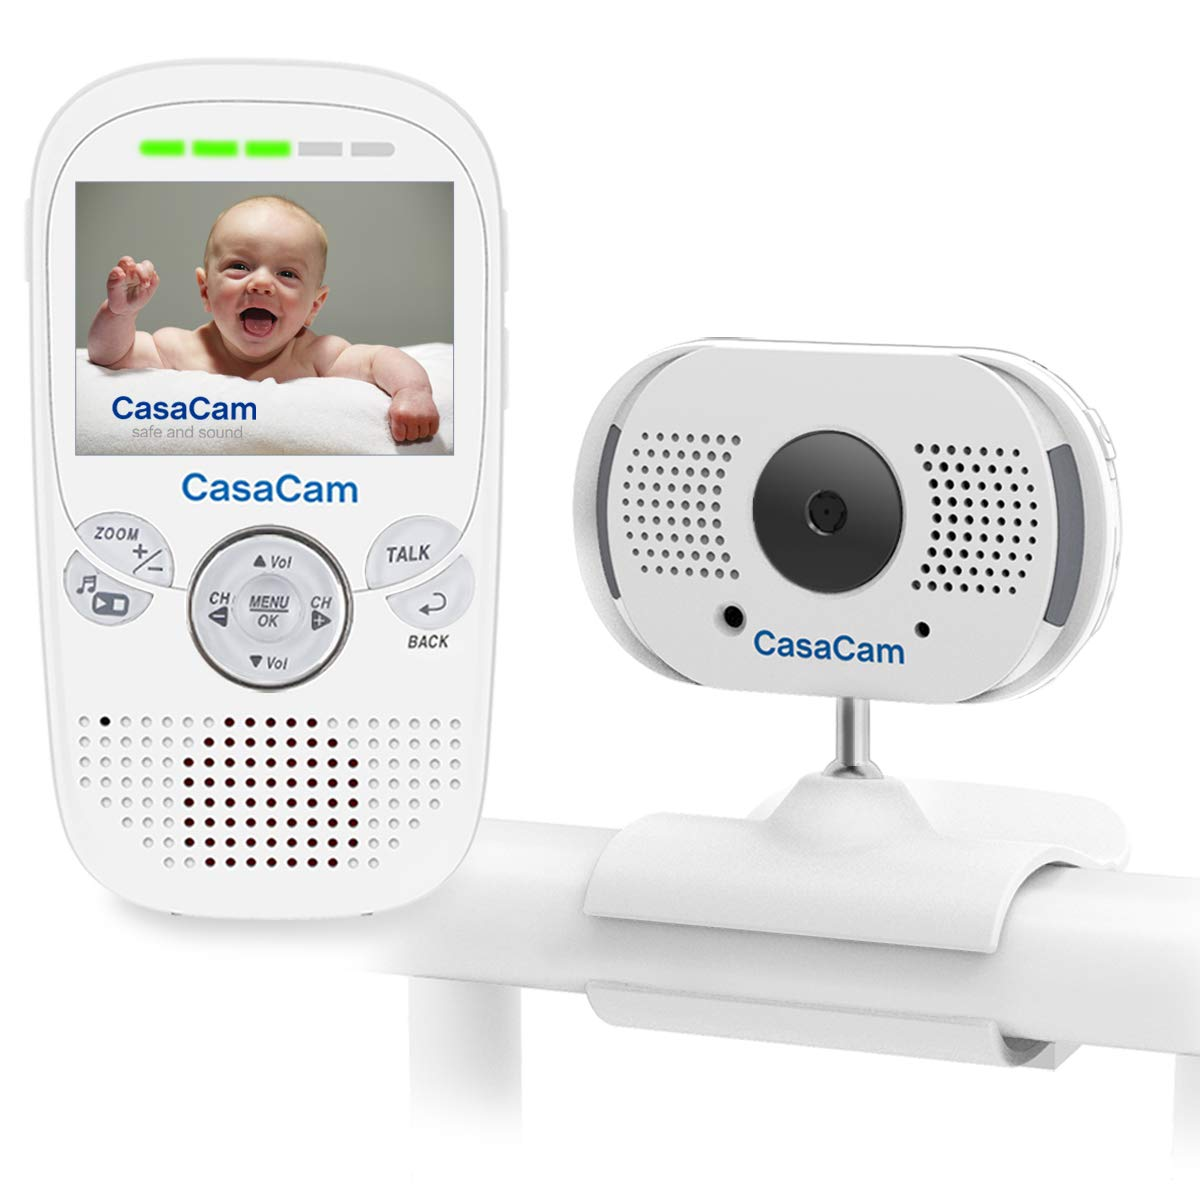 CasaCam BM100 Video Baby Monitor with 2.3'' LCD Monitor and Digital ClipCam, Two-Way Audio, Automatic Night Vision, Temperature Monitoring, Night Light and Lullabies (1-cam kit)